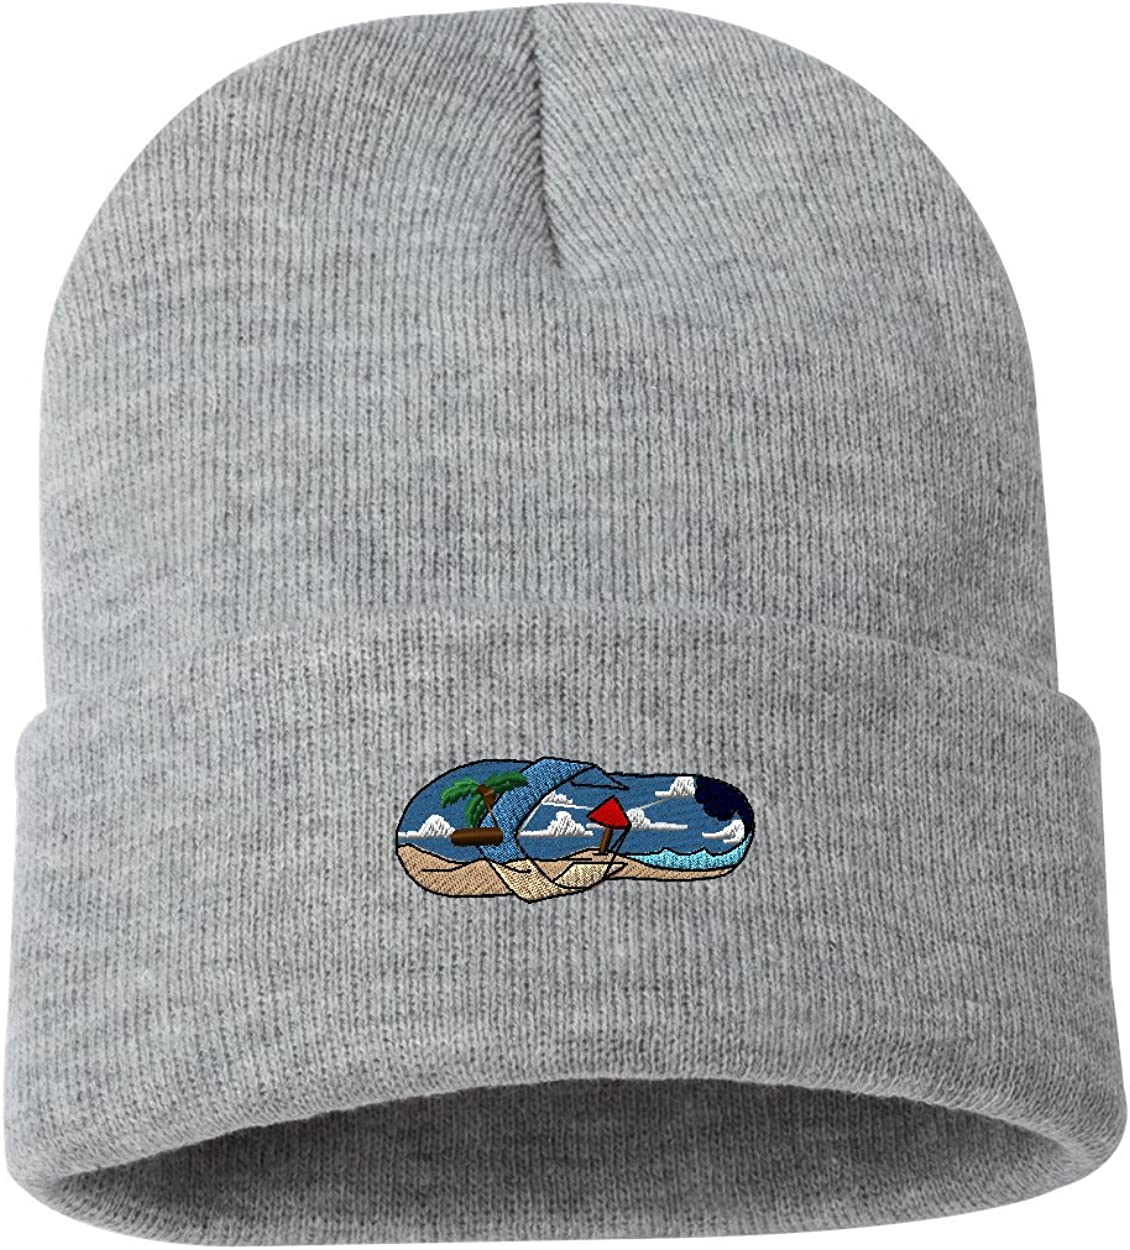 Flip Flop Scene/ Custom Personalized Embroidery Embroidered Beanie